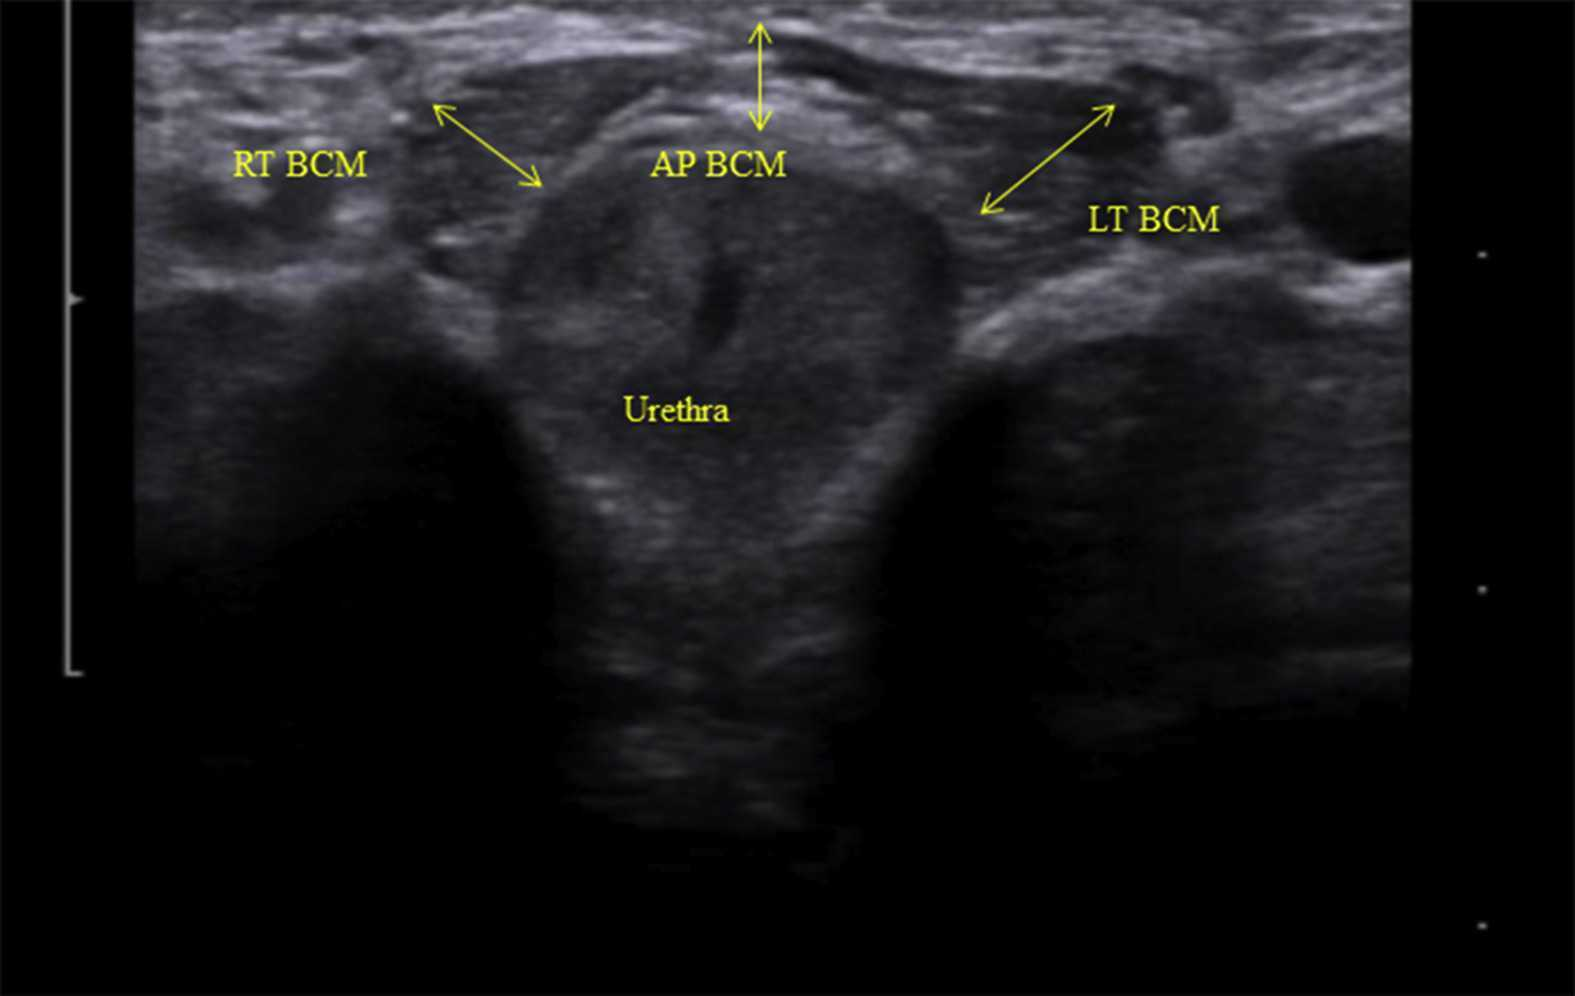 Rehabilitative Ultrasound Imaging for Men's Pelvic Health